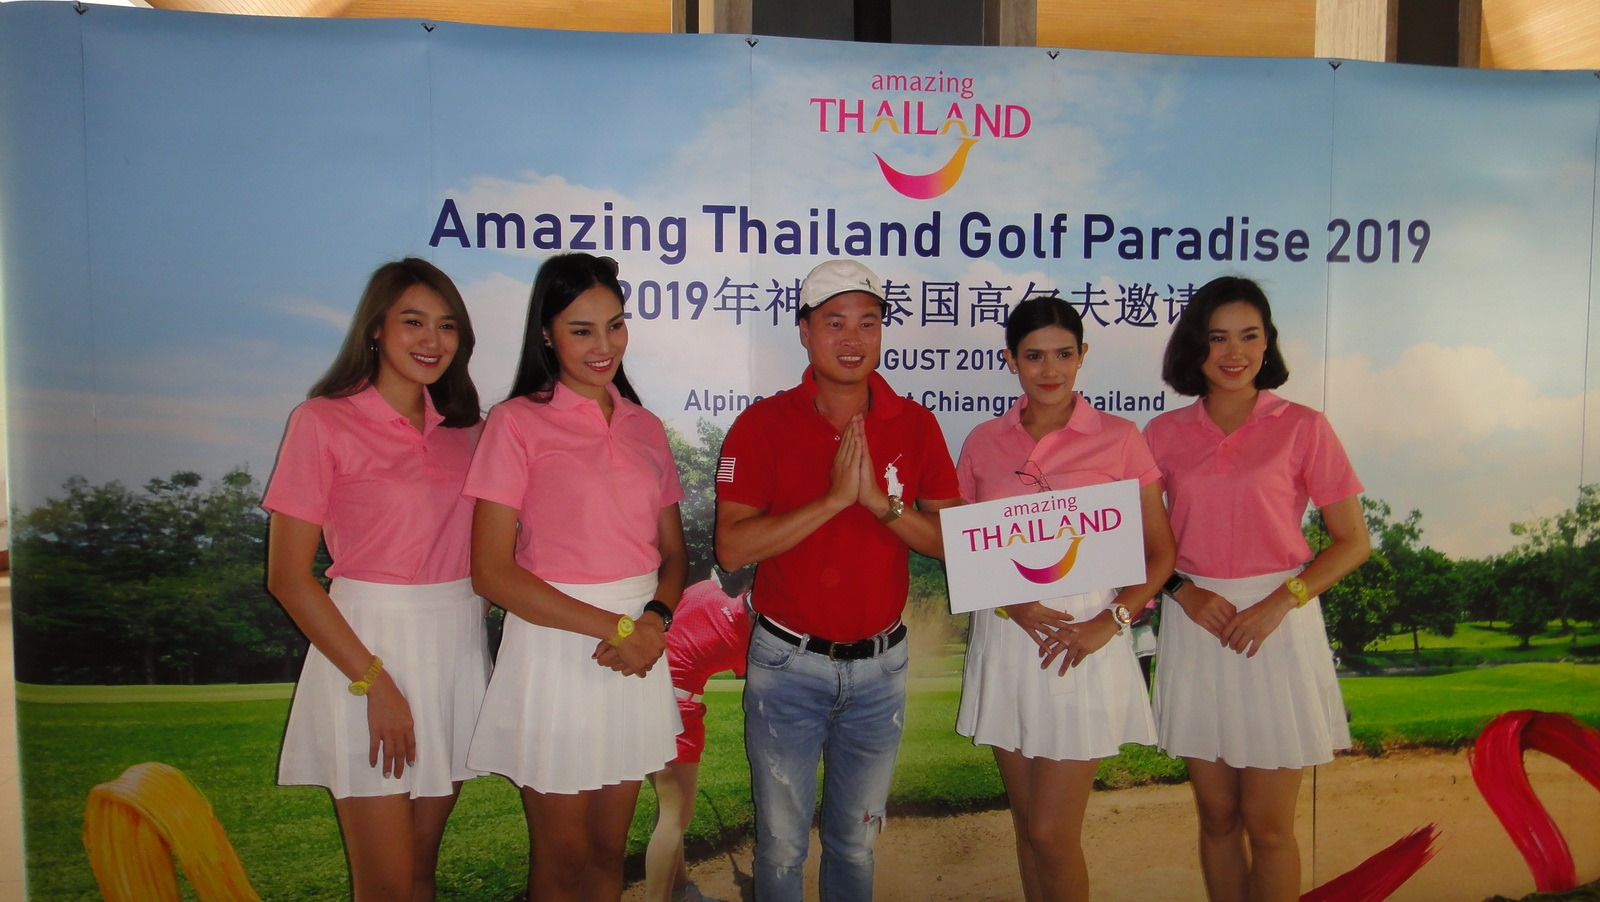 Amazing Thailand Golf Paradise 2019 @Alpine Golf Resort Chiangmai